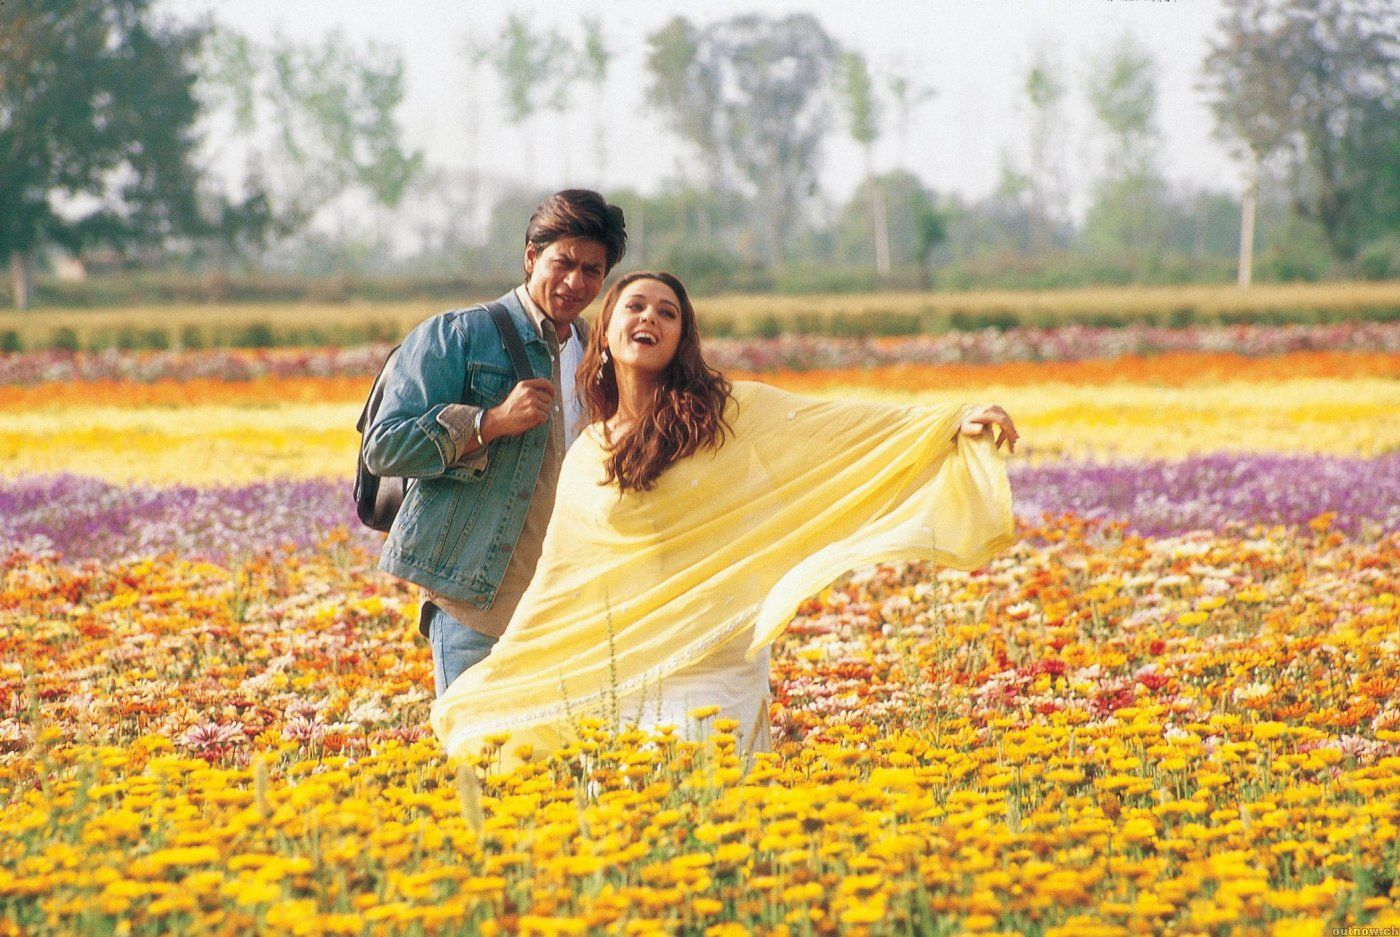 I'm still not sick of watching bollywood lovers frolic